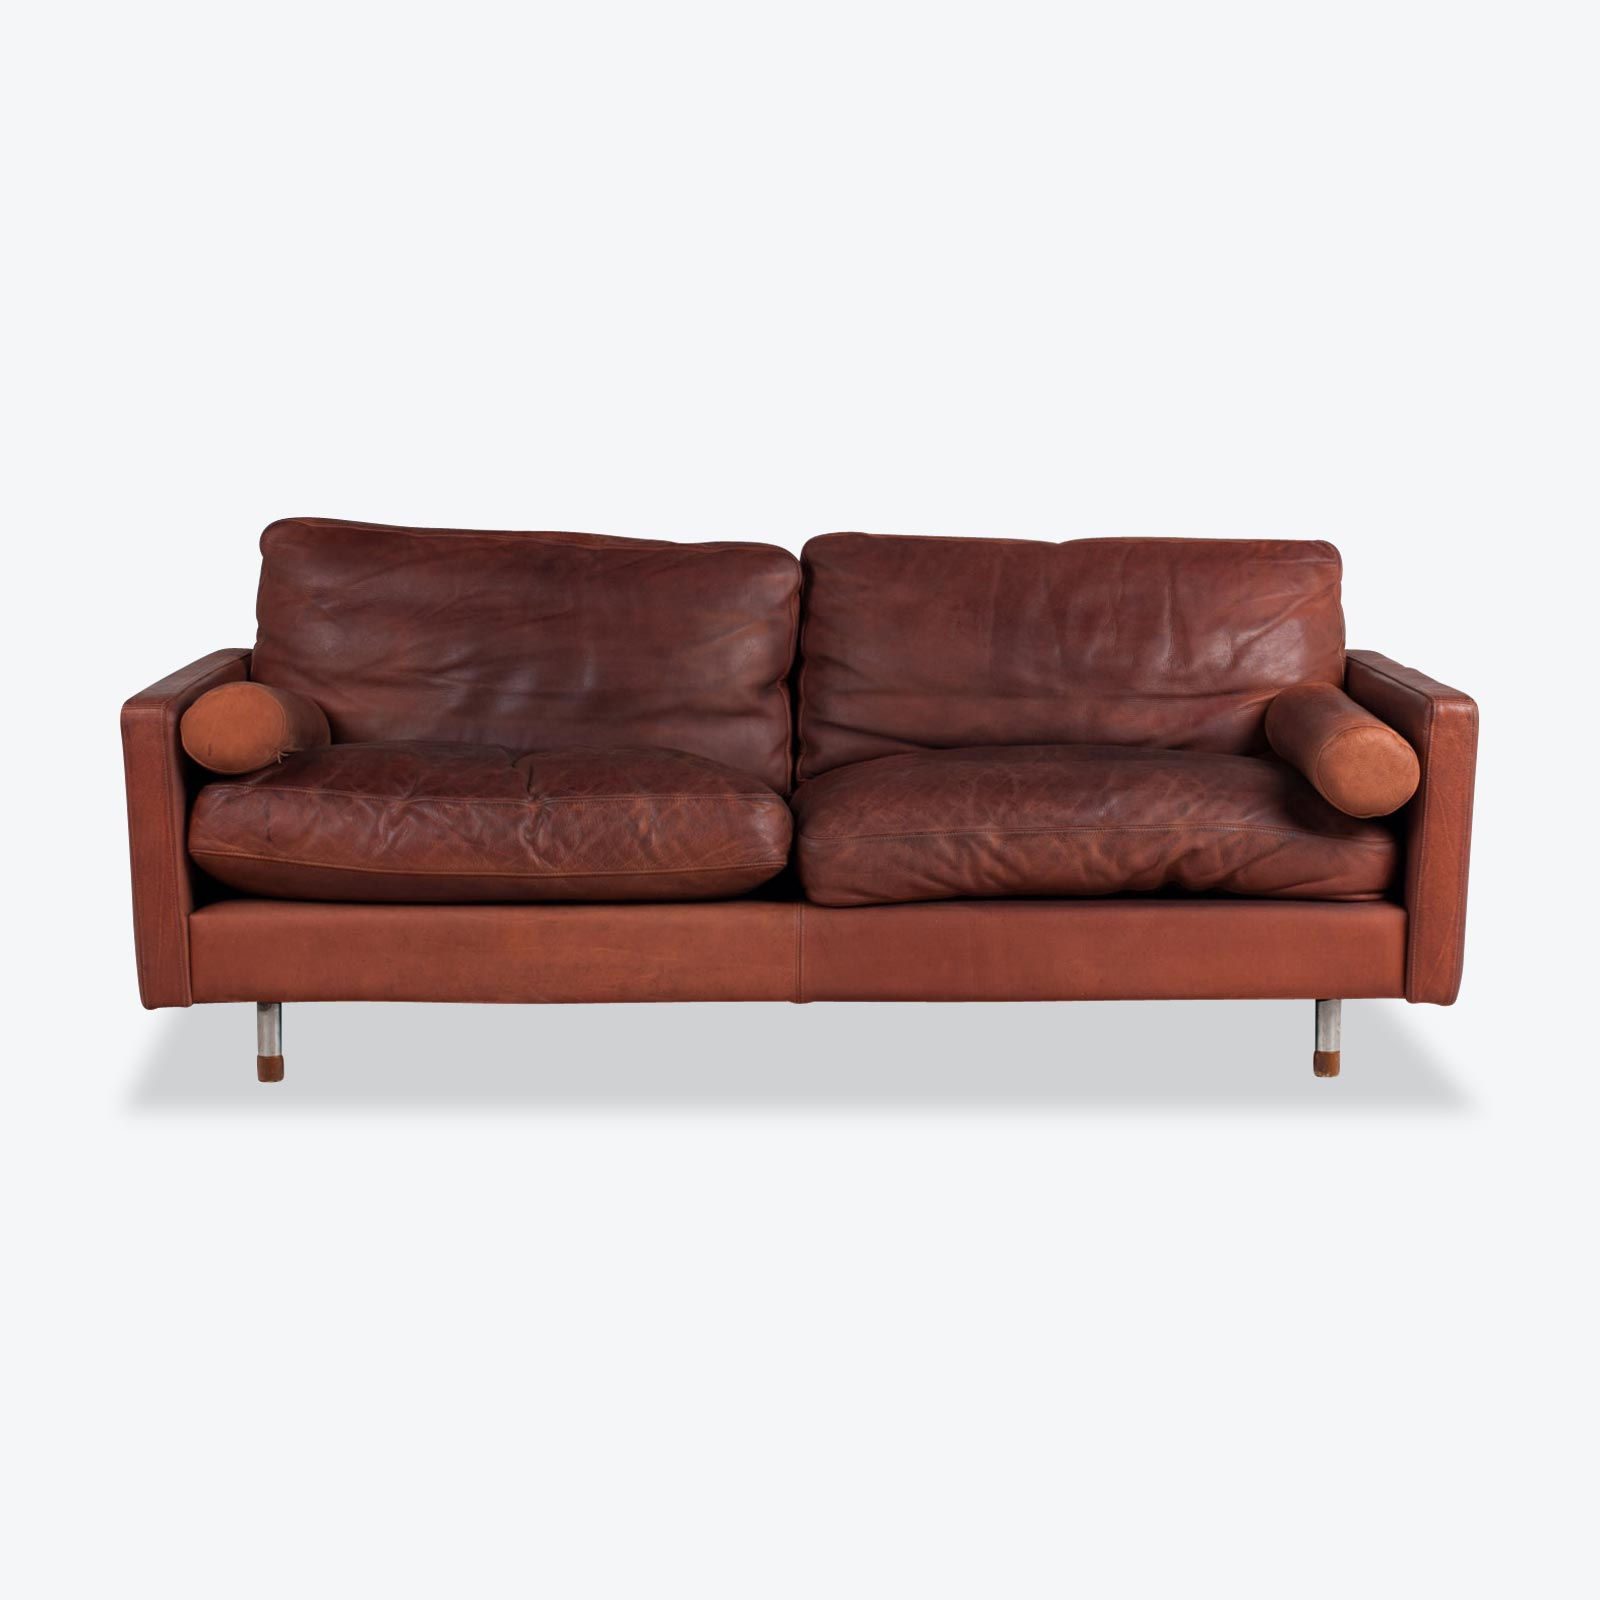 2 Seat Sofa in Burgundy Leather, 1960s, Denmark